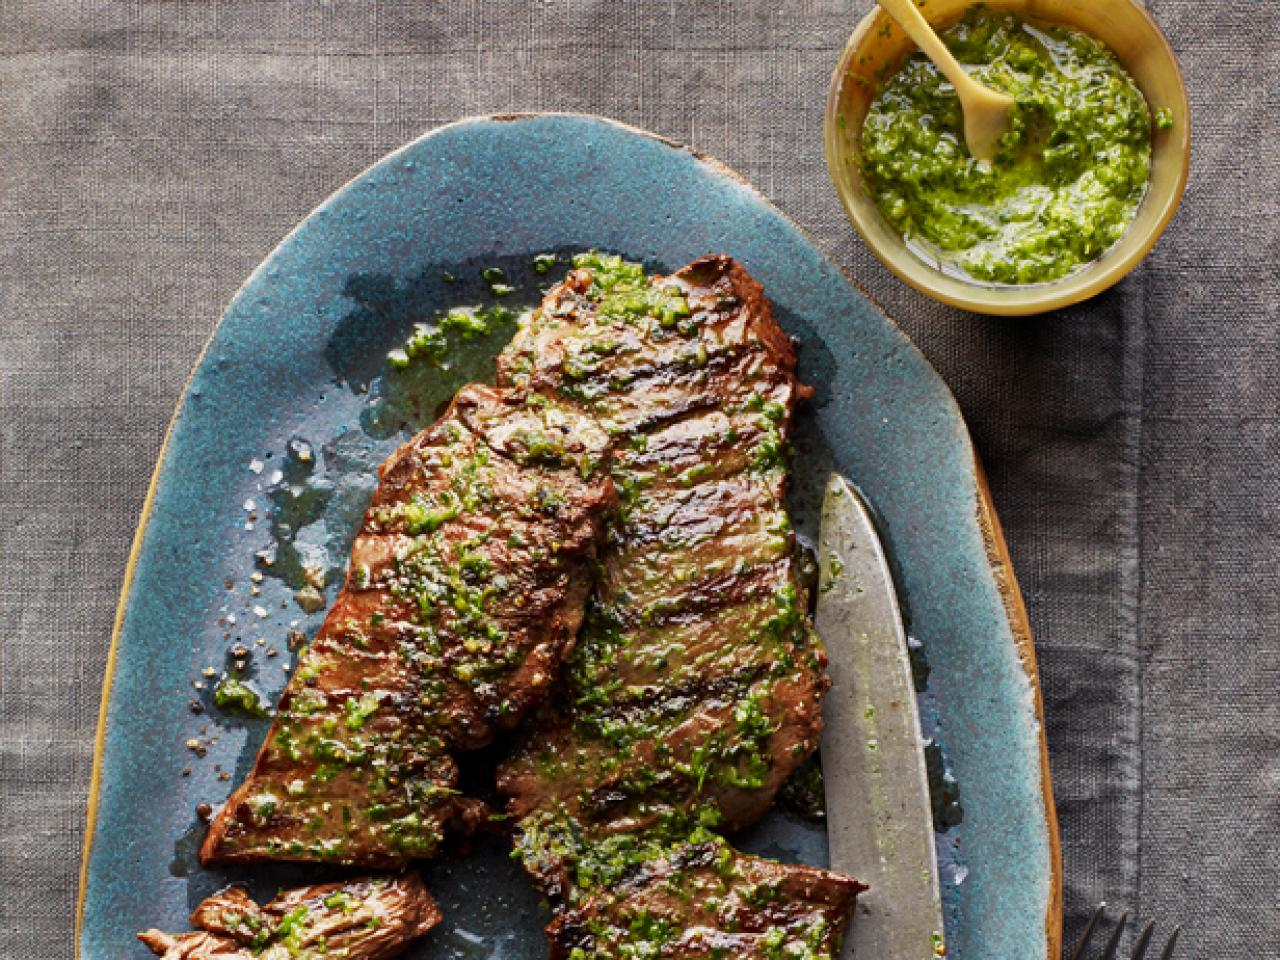 50 things to make with pesto recipes and cooking food network 50 things to make with pesto recipes and cooking food network recipes dinners and easy meal ideas food network forumfinder Gallery